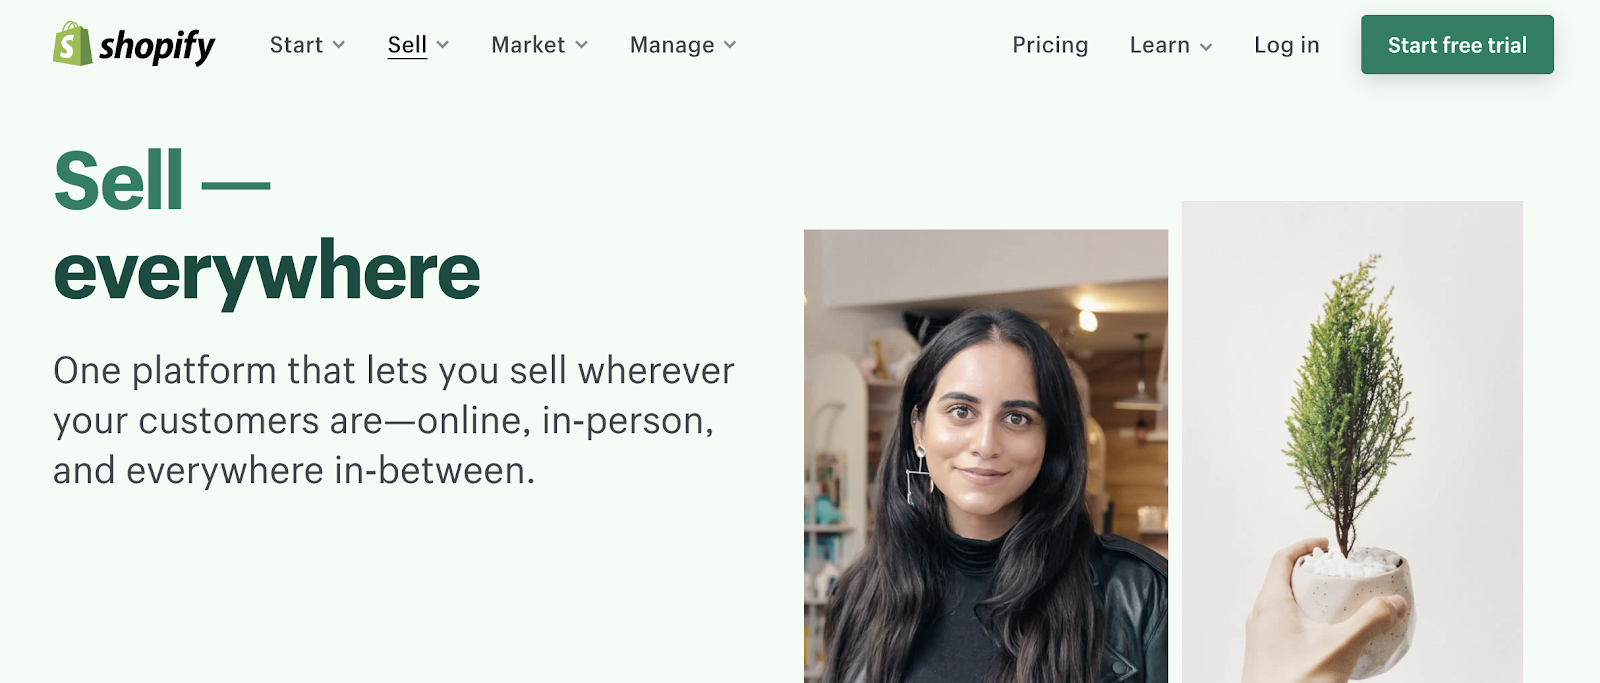 best ecommerce tools 2020 shopify